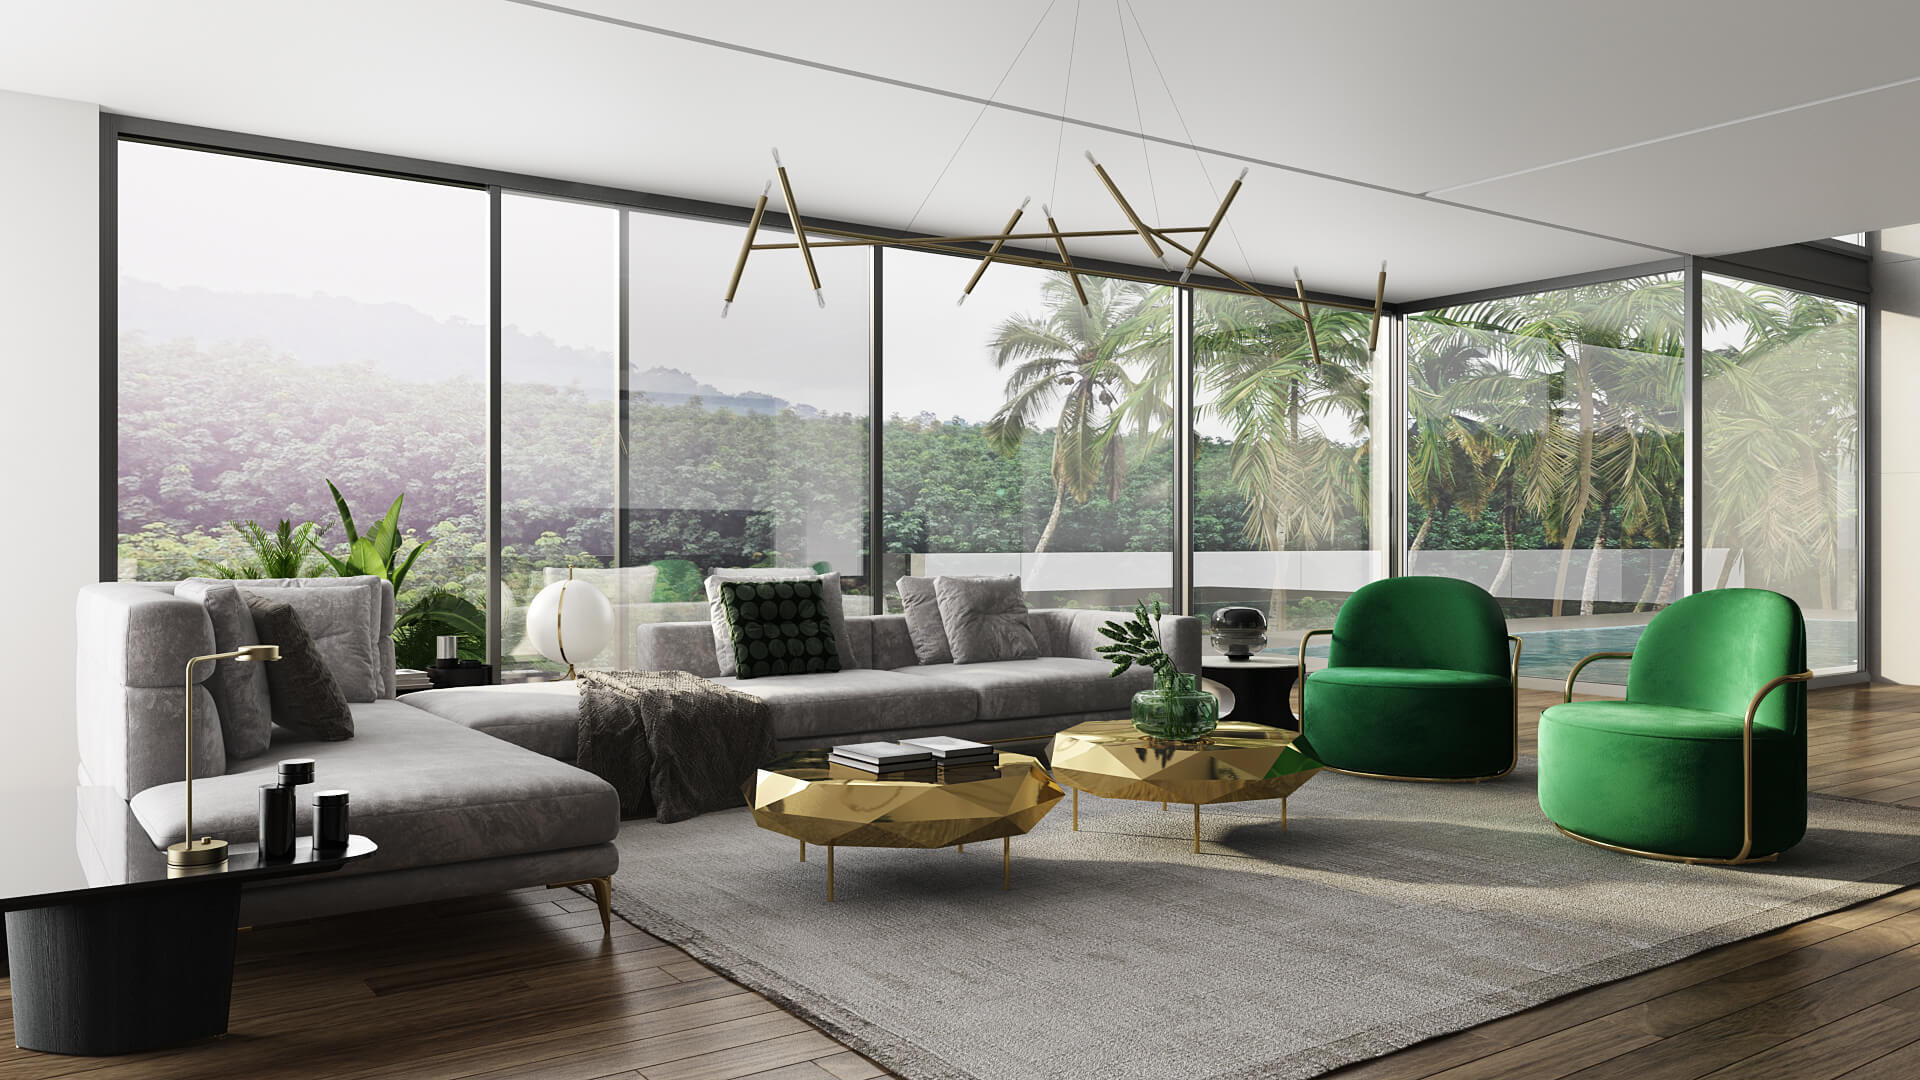 3D Rendering of a Beautiful Living Room Interior